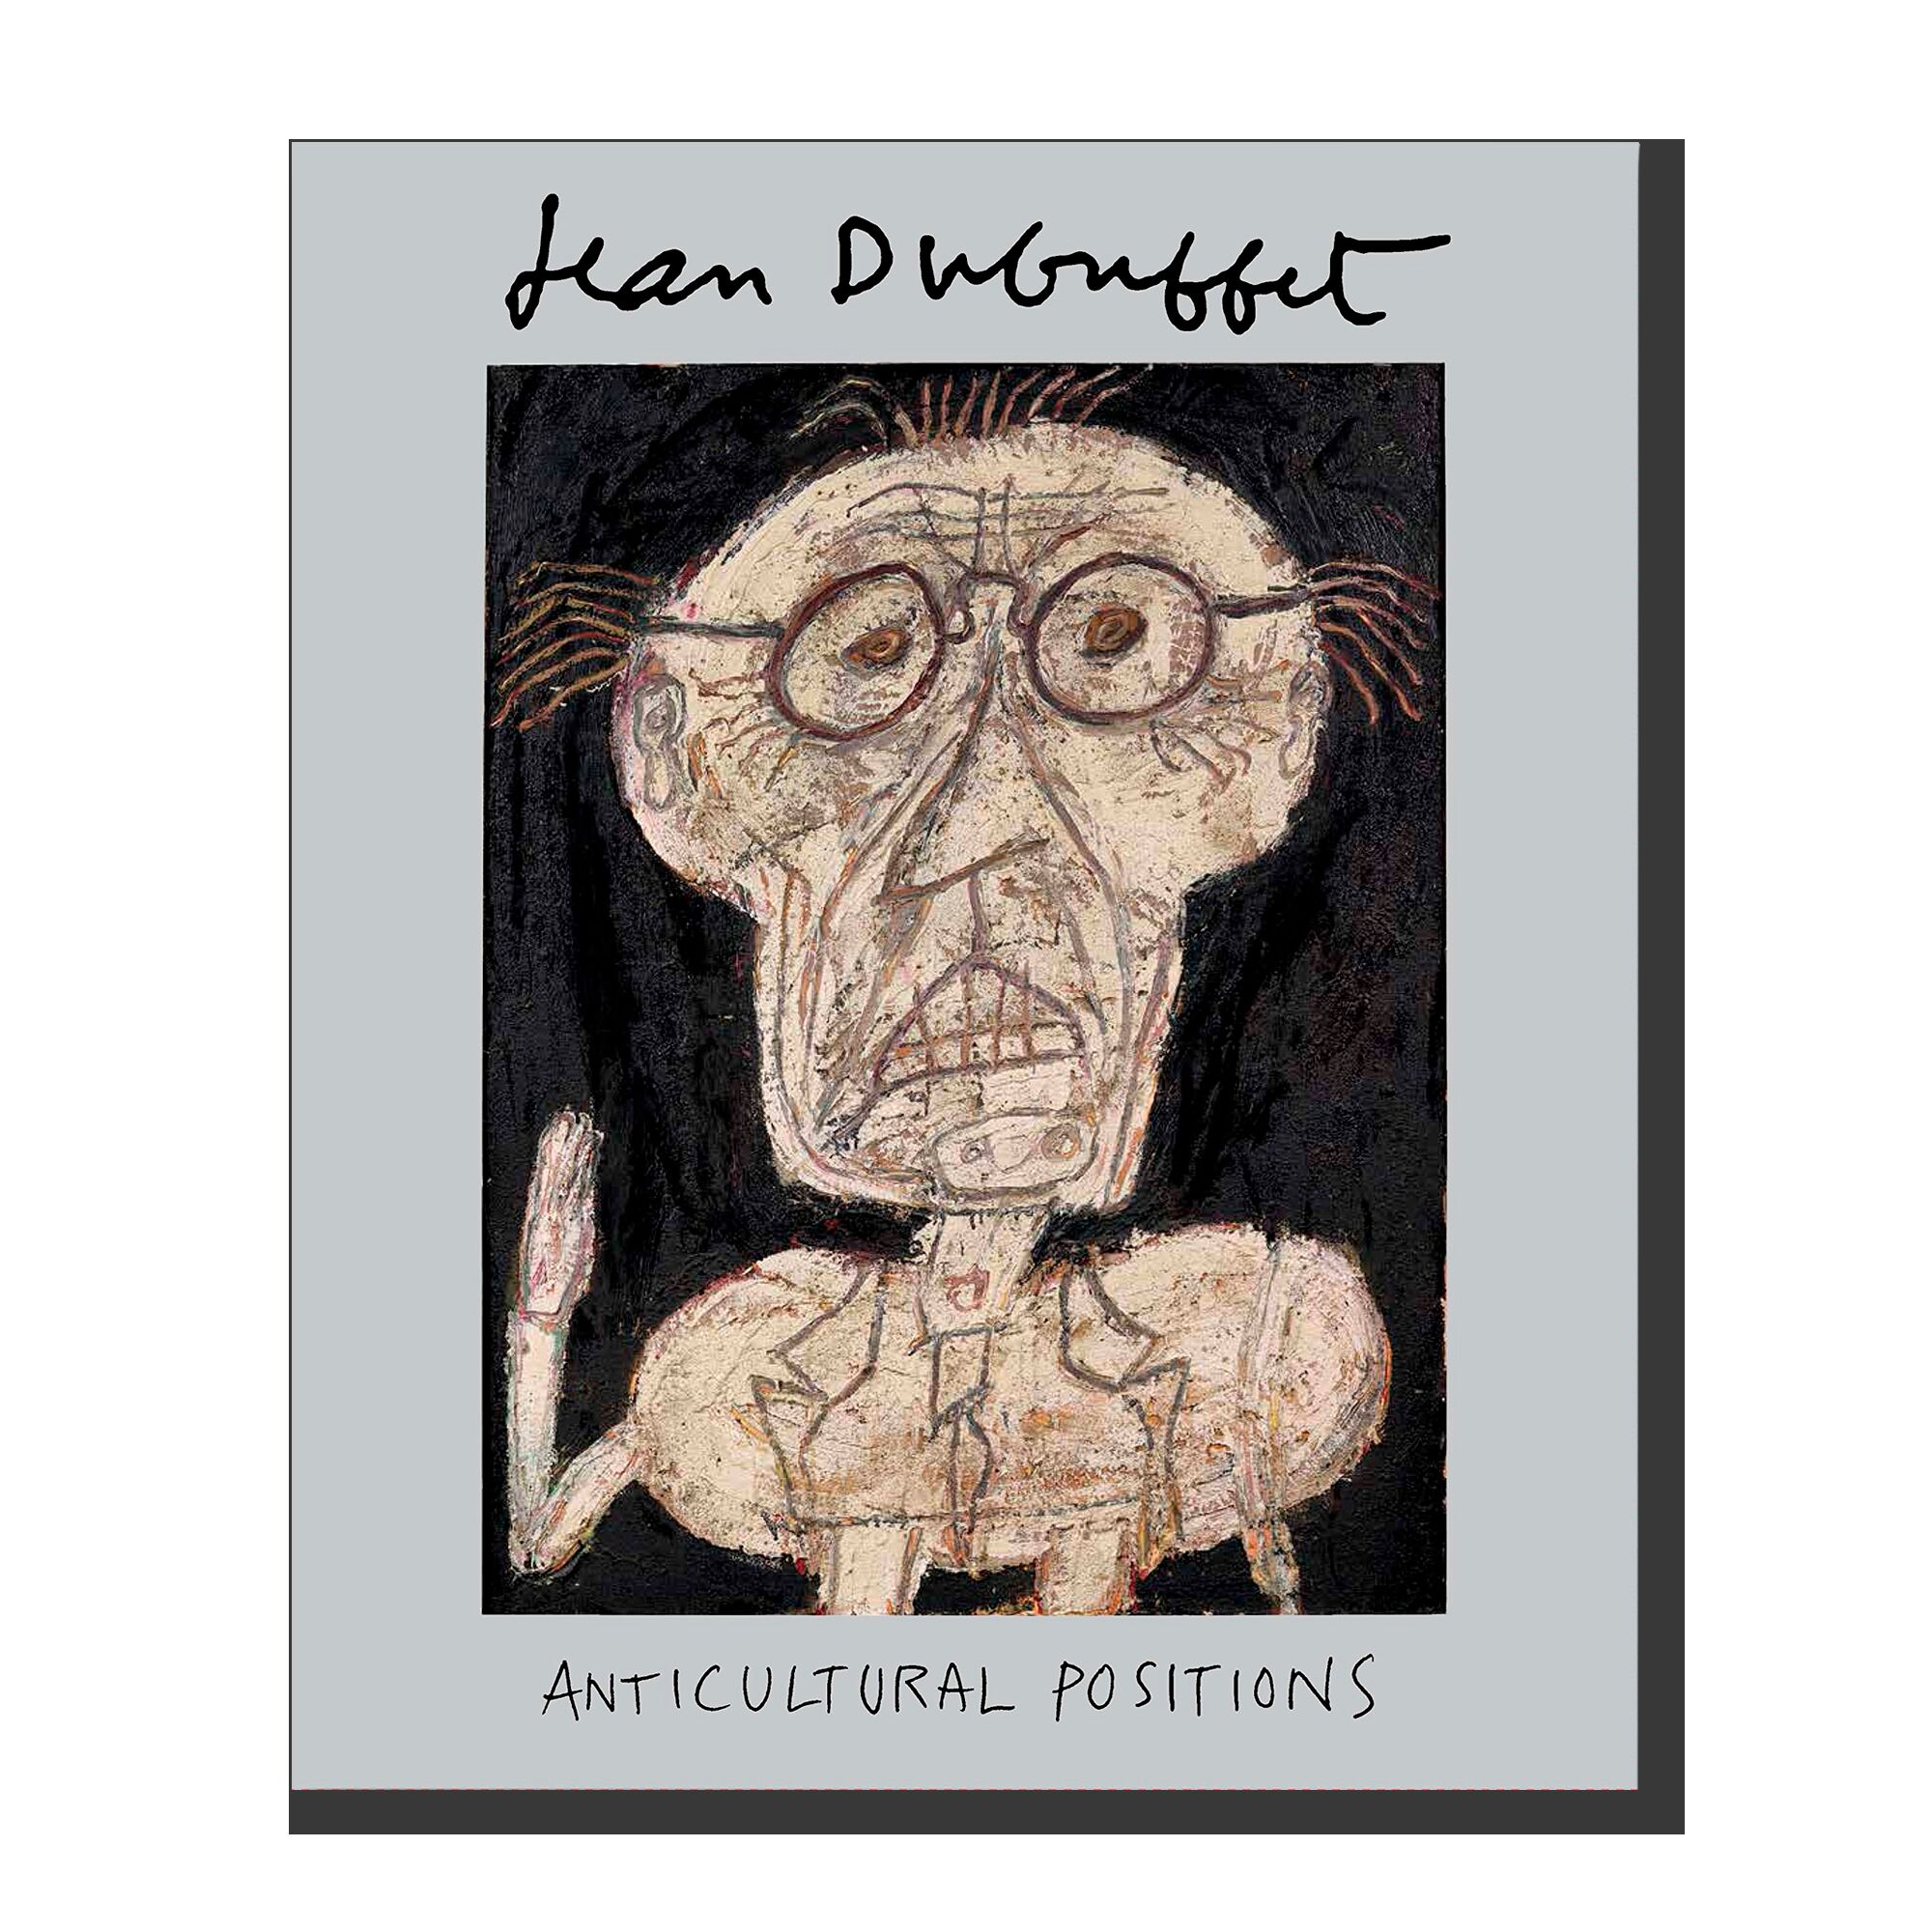 Jean Dubuffet: Anticultural Positions